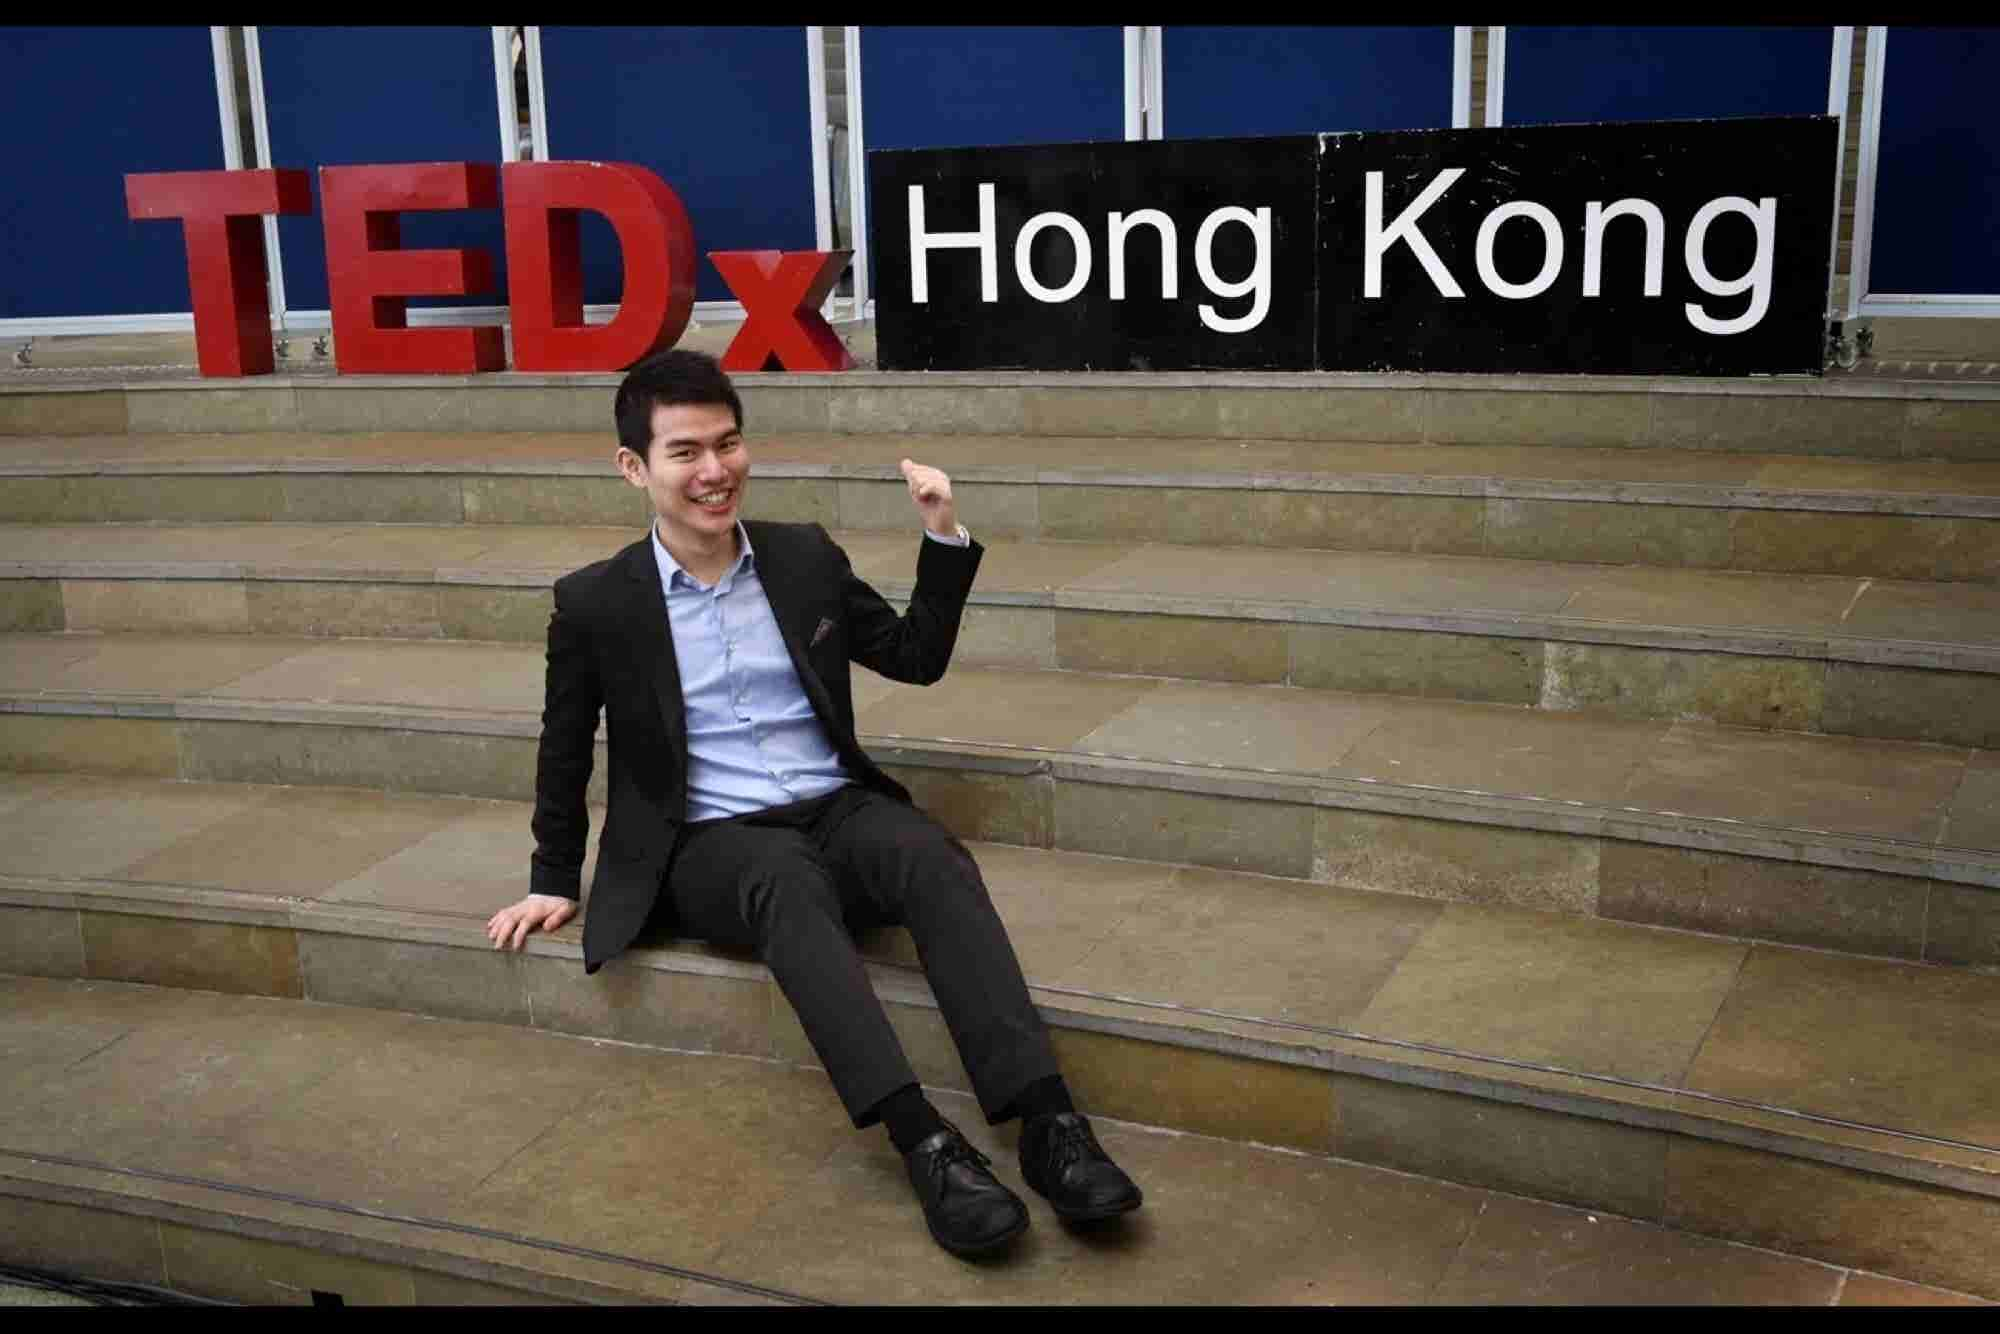 4 Easy Steps to Get You on TEDx Talks